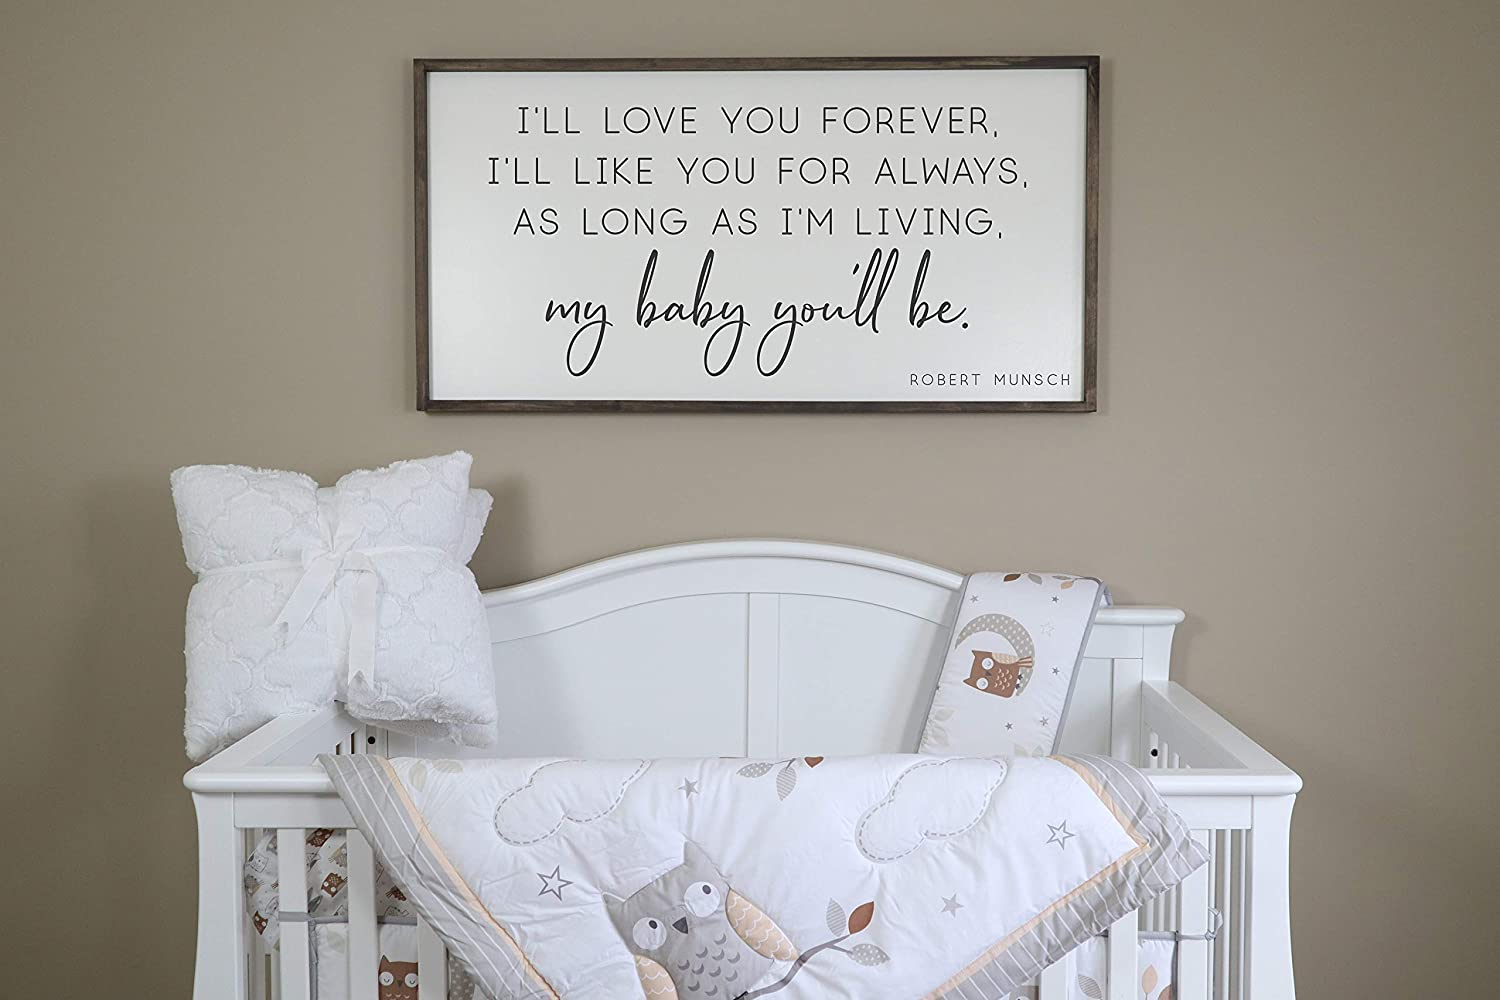 Flowershave357 Ill Love You Forever Ill Like You for Always Sign My Baby Youll Be Framed Wood Sign Nursery Decor Nursery Sign Farmhouse Sign